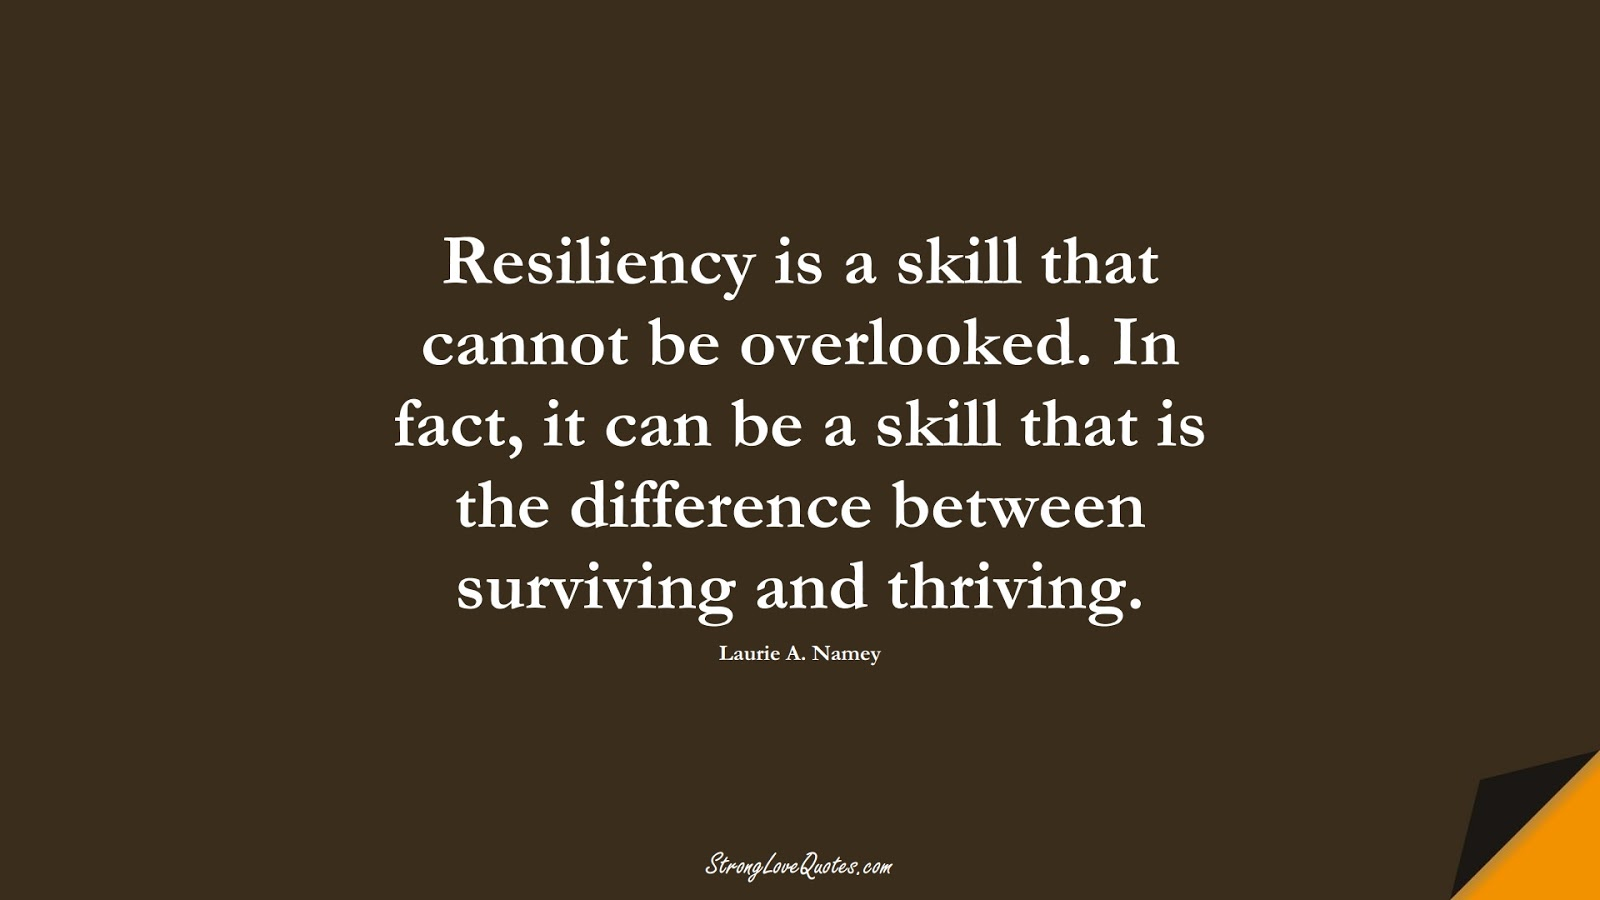 Resiliency is a skill that cannot be overlooked. In fact, it can be a skill that is the difference between surviving and thriving. (Laurie A. Namey);  #EducationQuotes